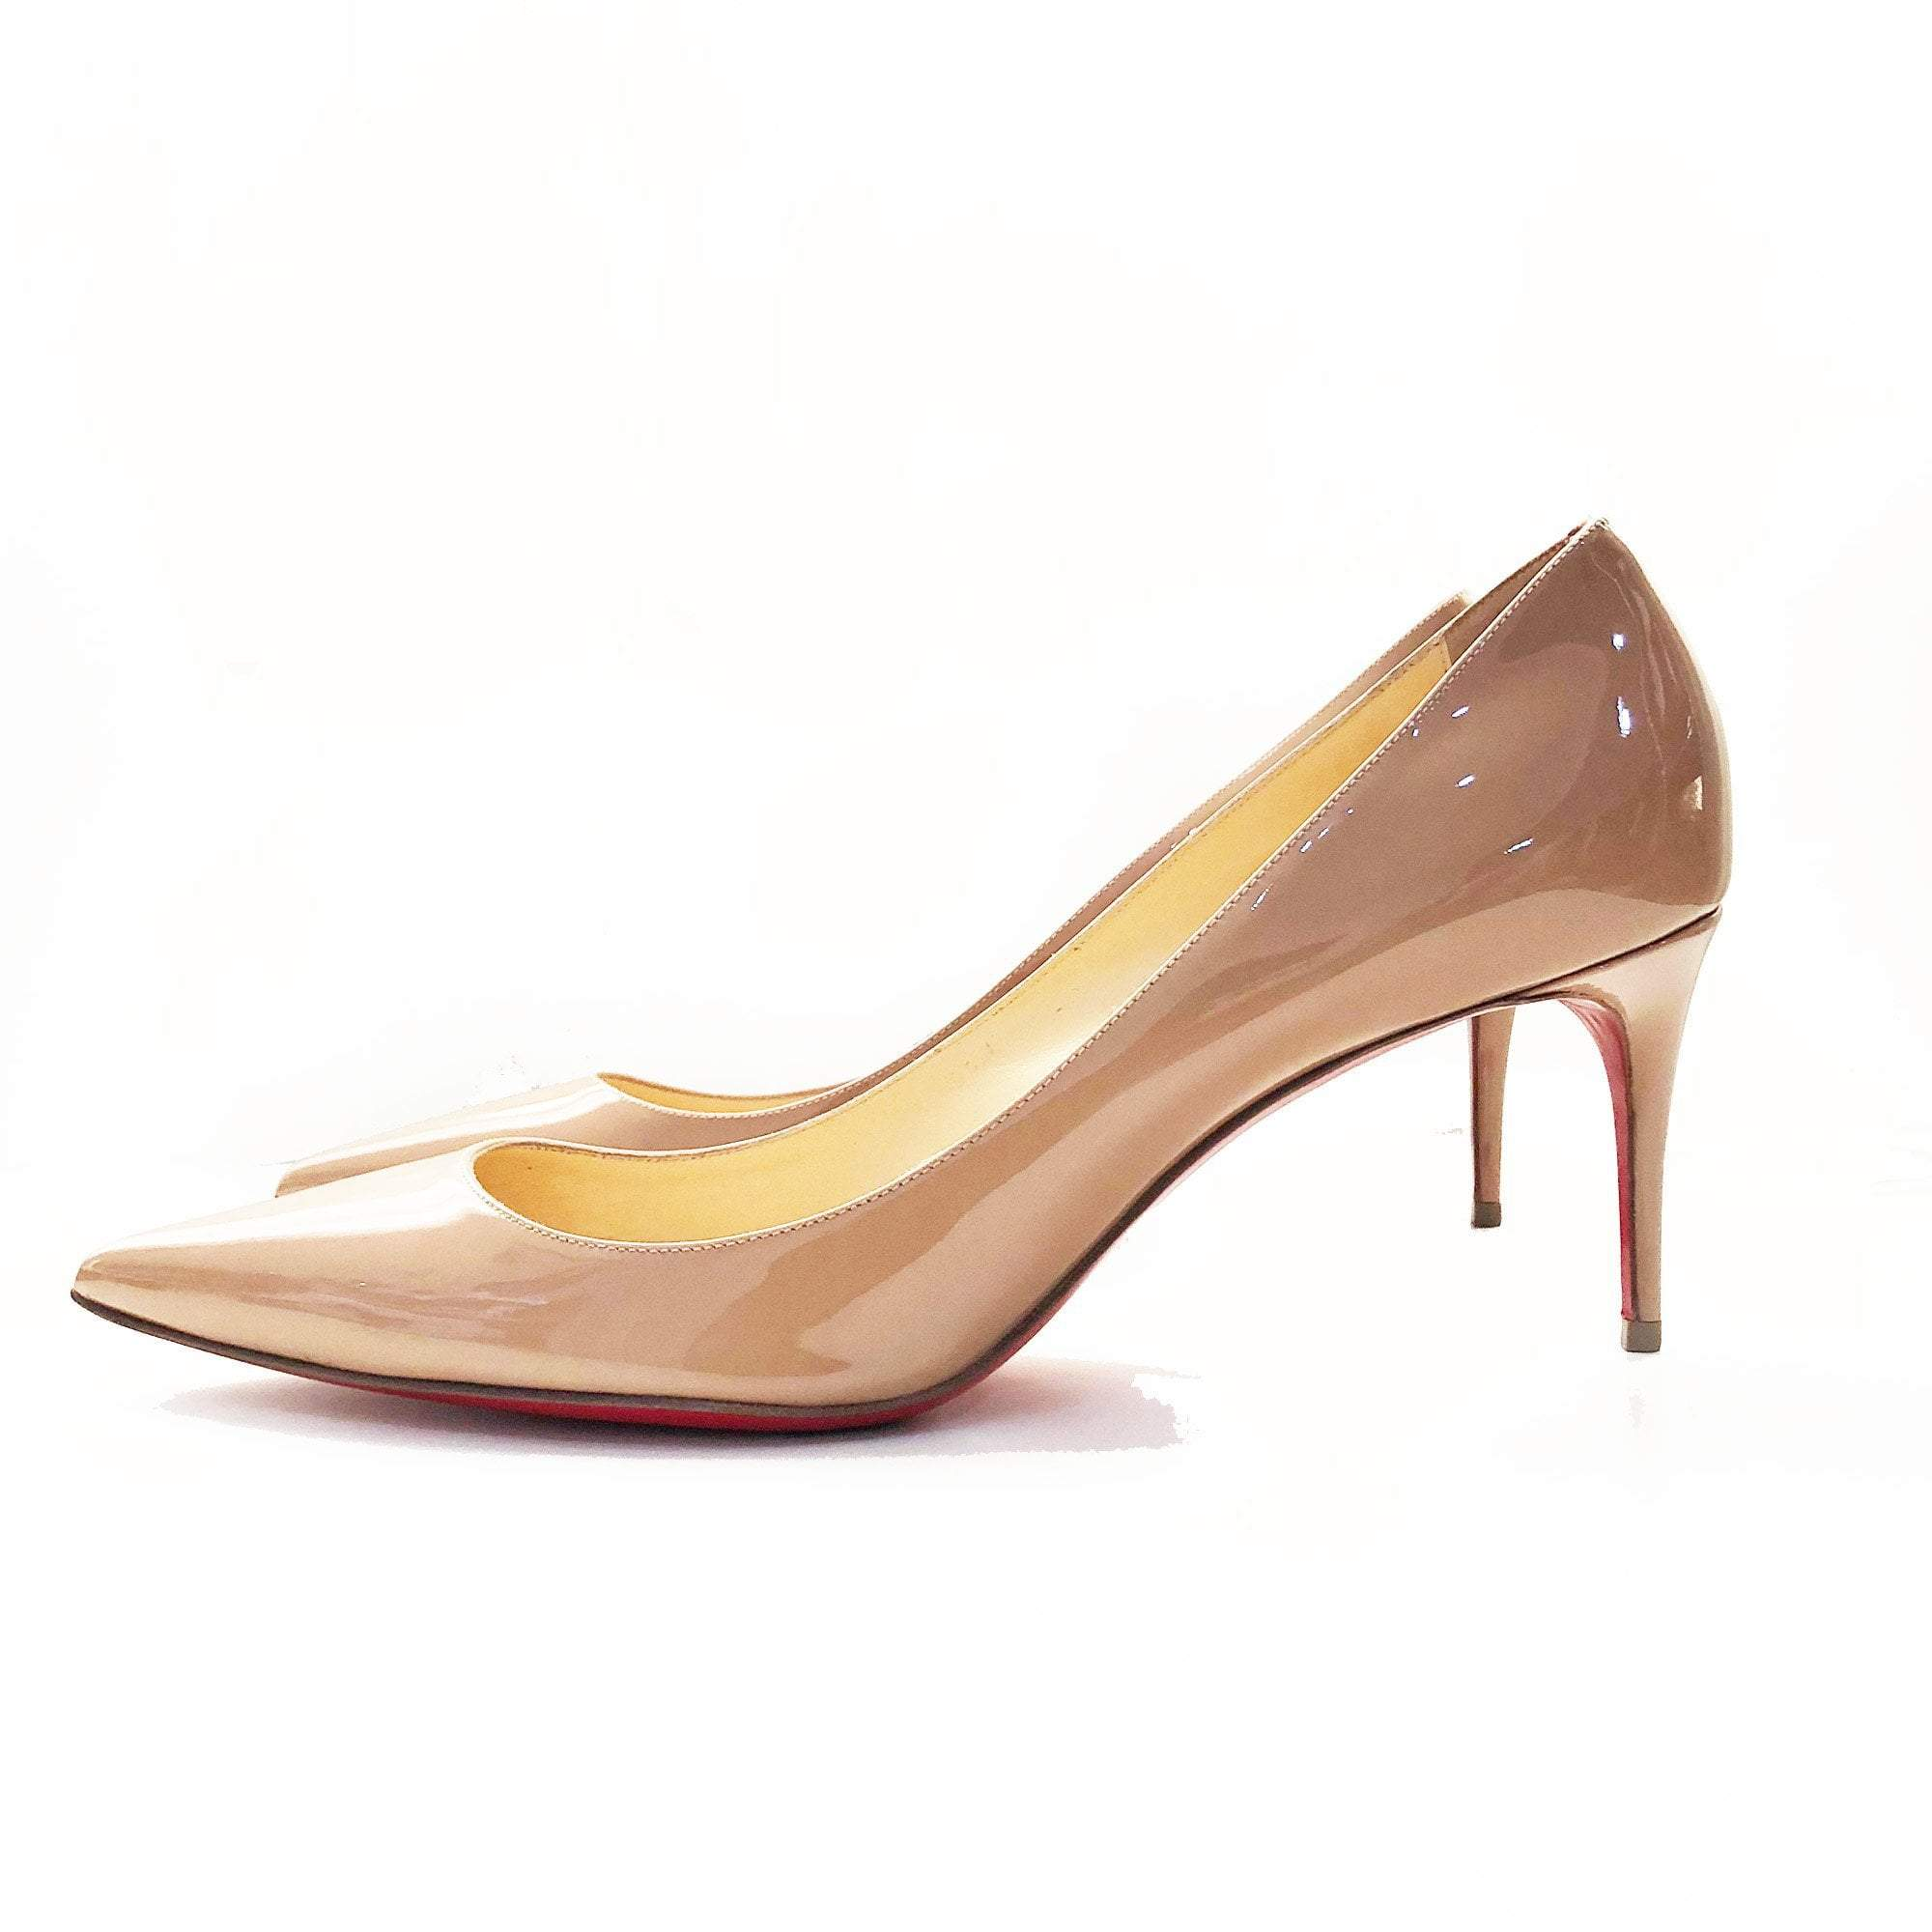 Christian Louboutin Nude Pointed Toe Patent Leather Pumps